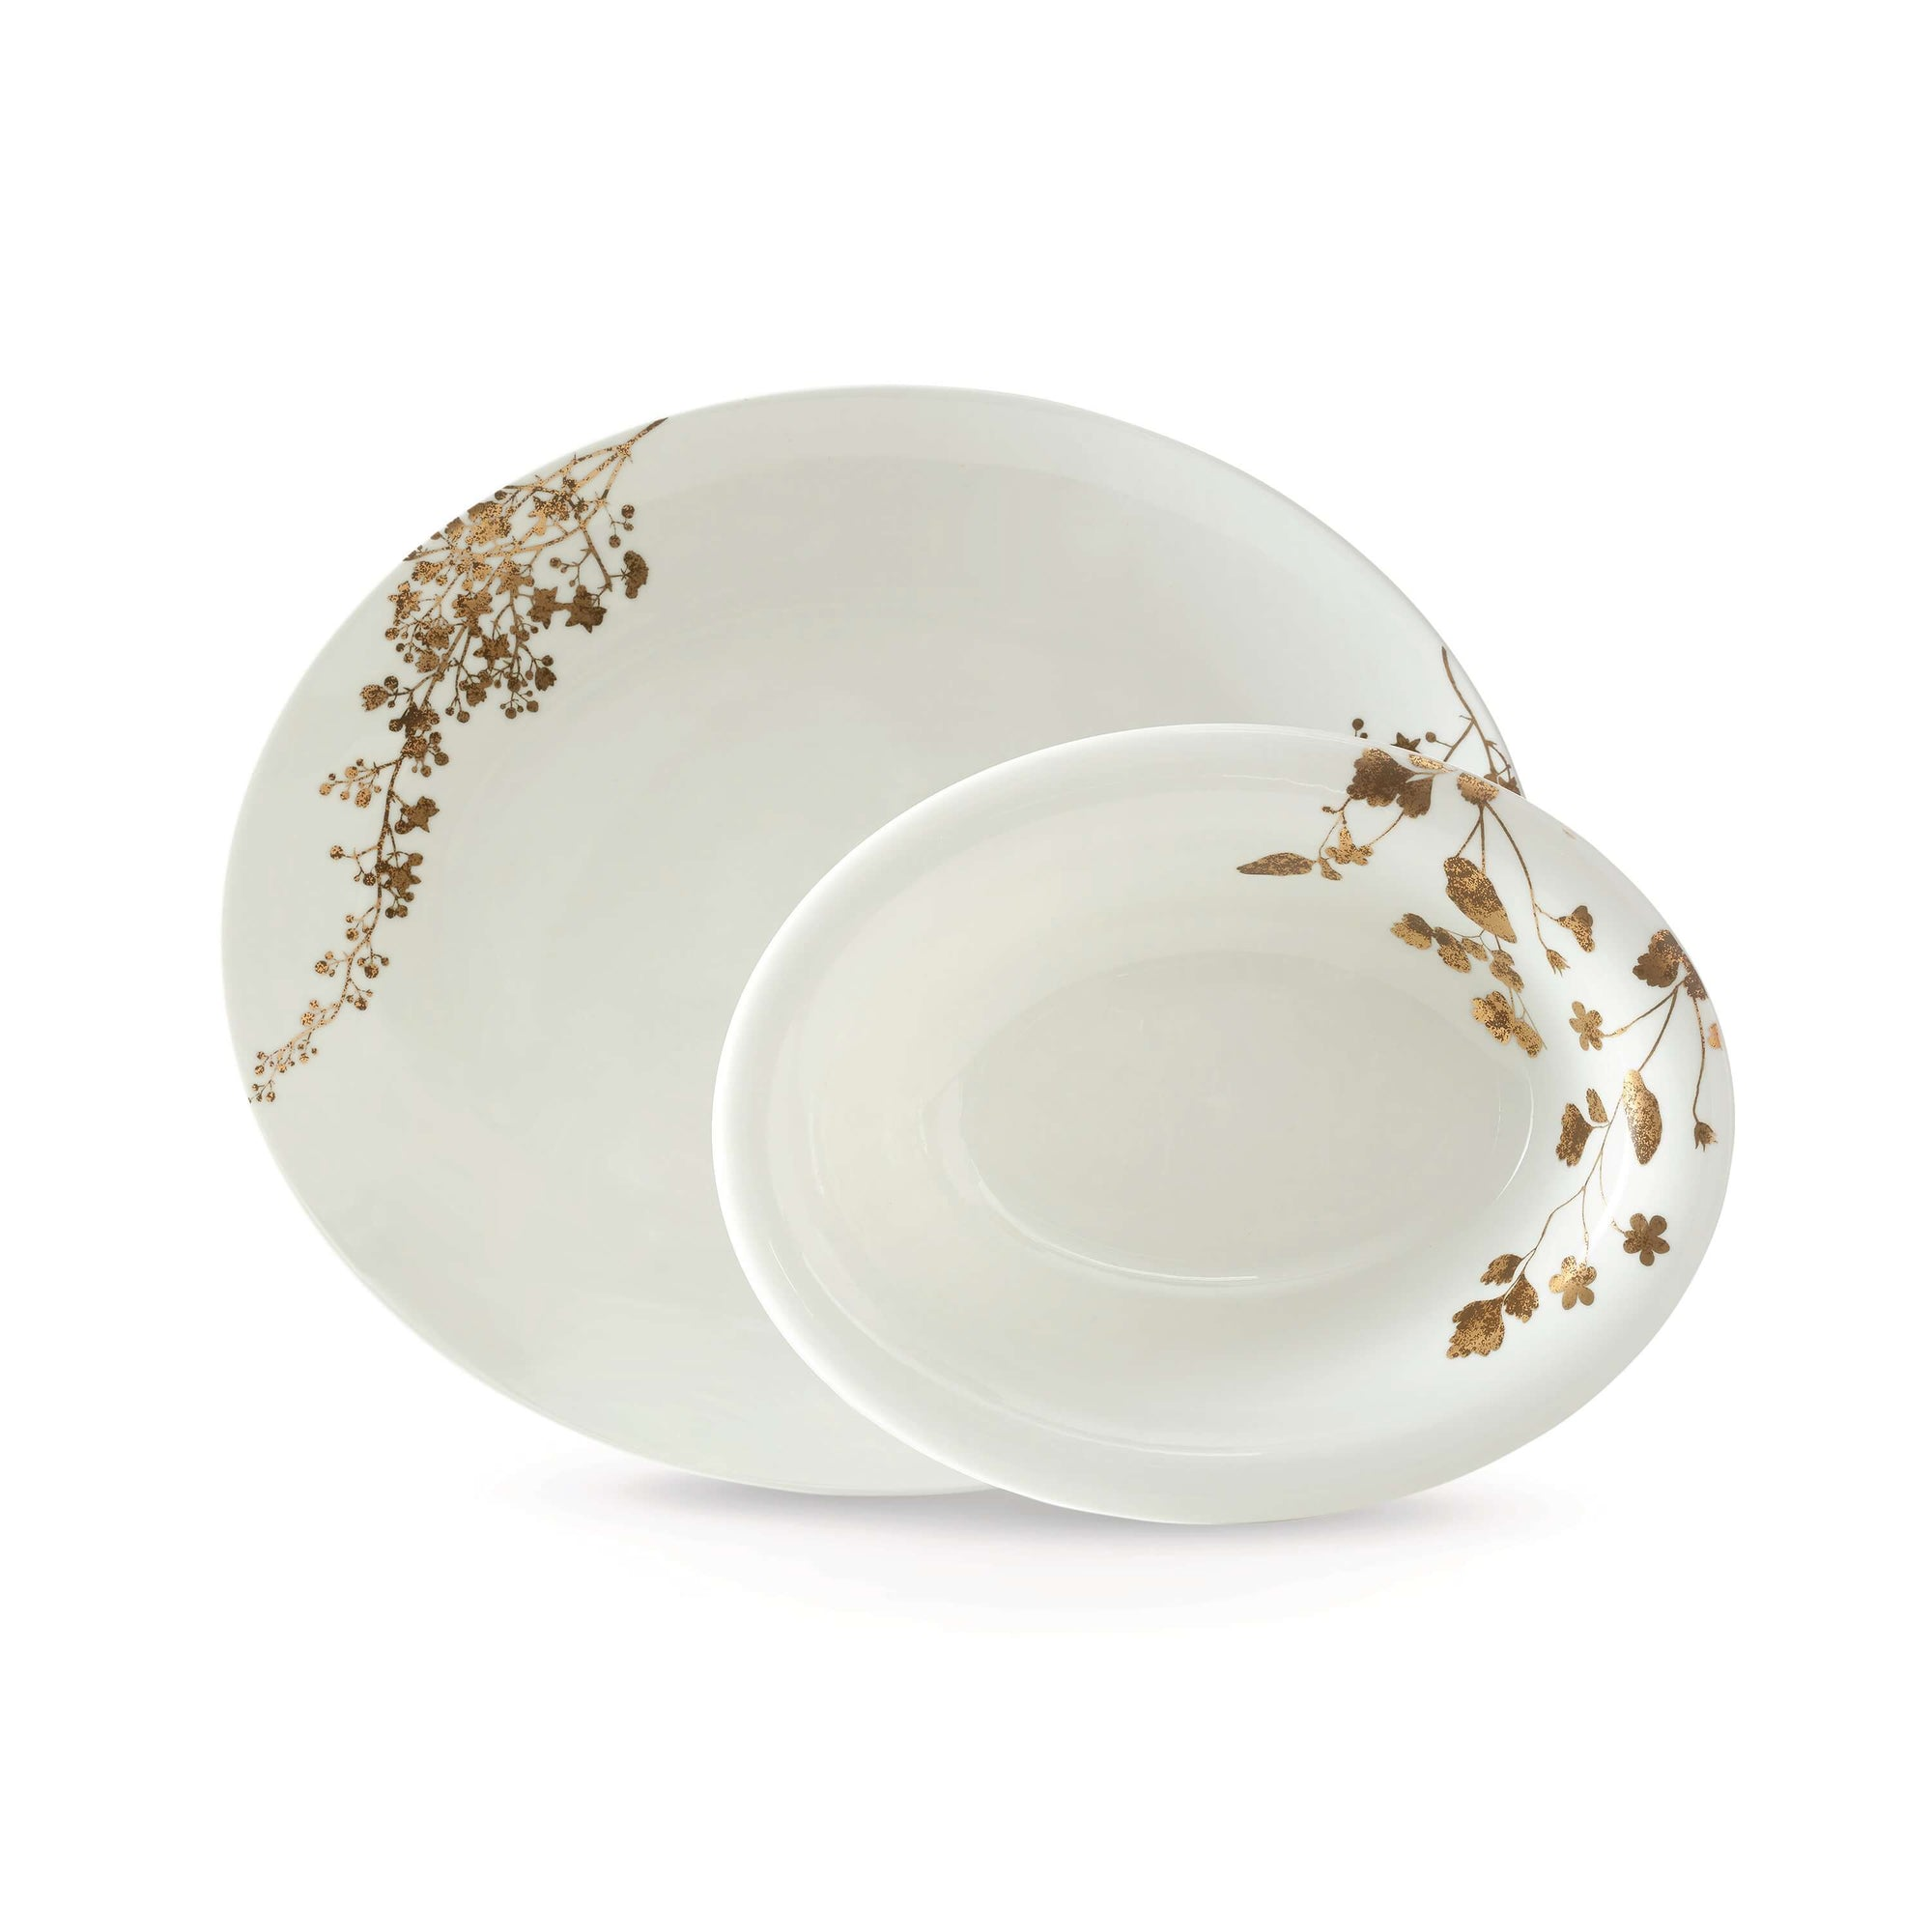 Vera Wang Jardin Serving Set